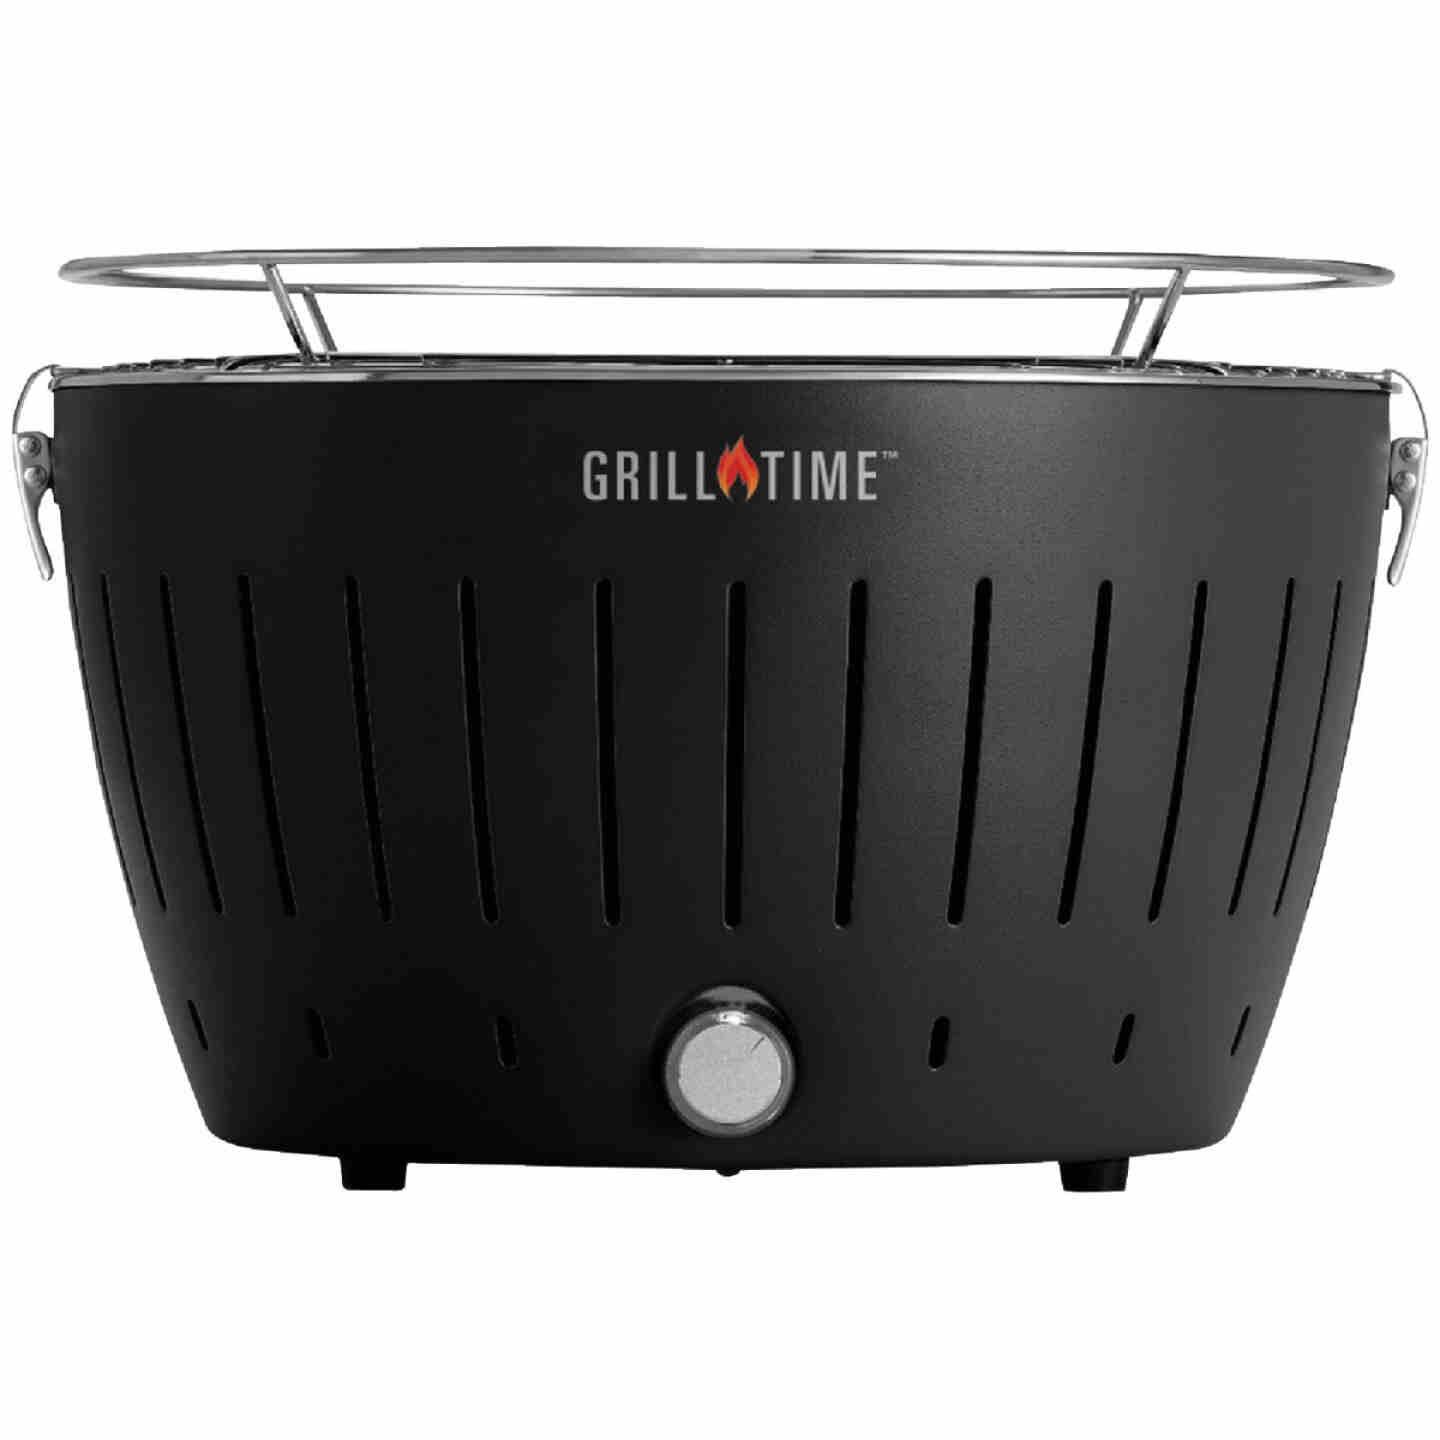 Grill Time Tailgater GT Gray 124 Sq. In. Charcoal Portable Grill Image 1